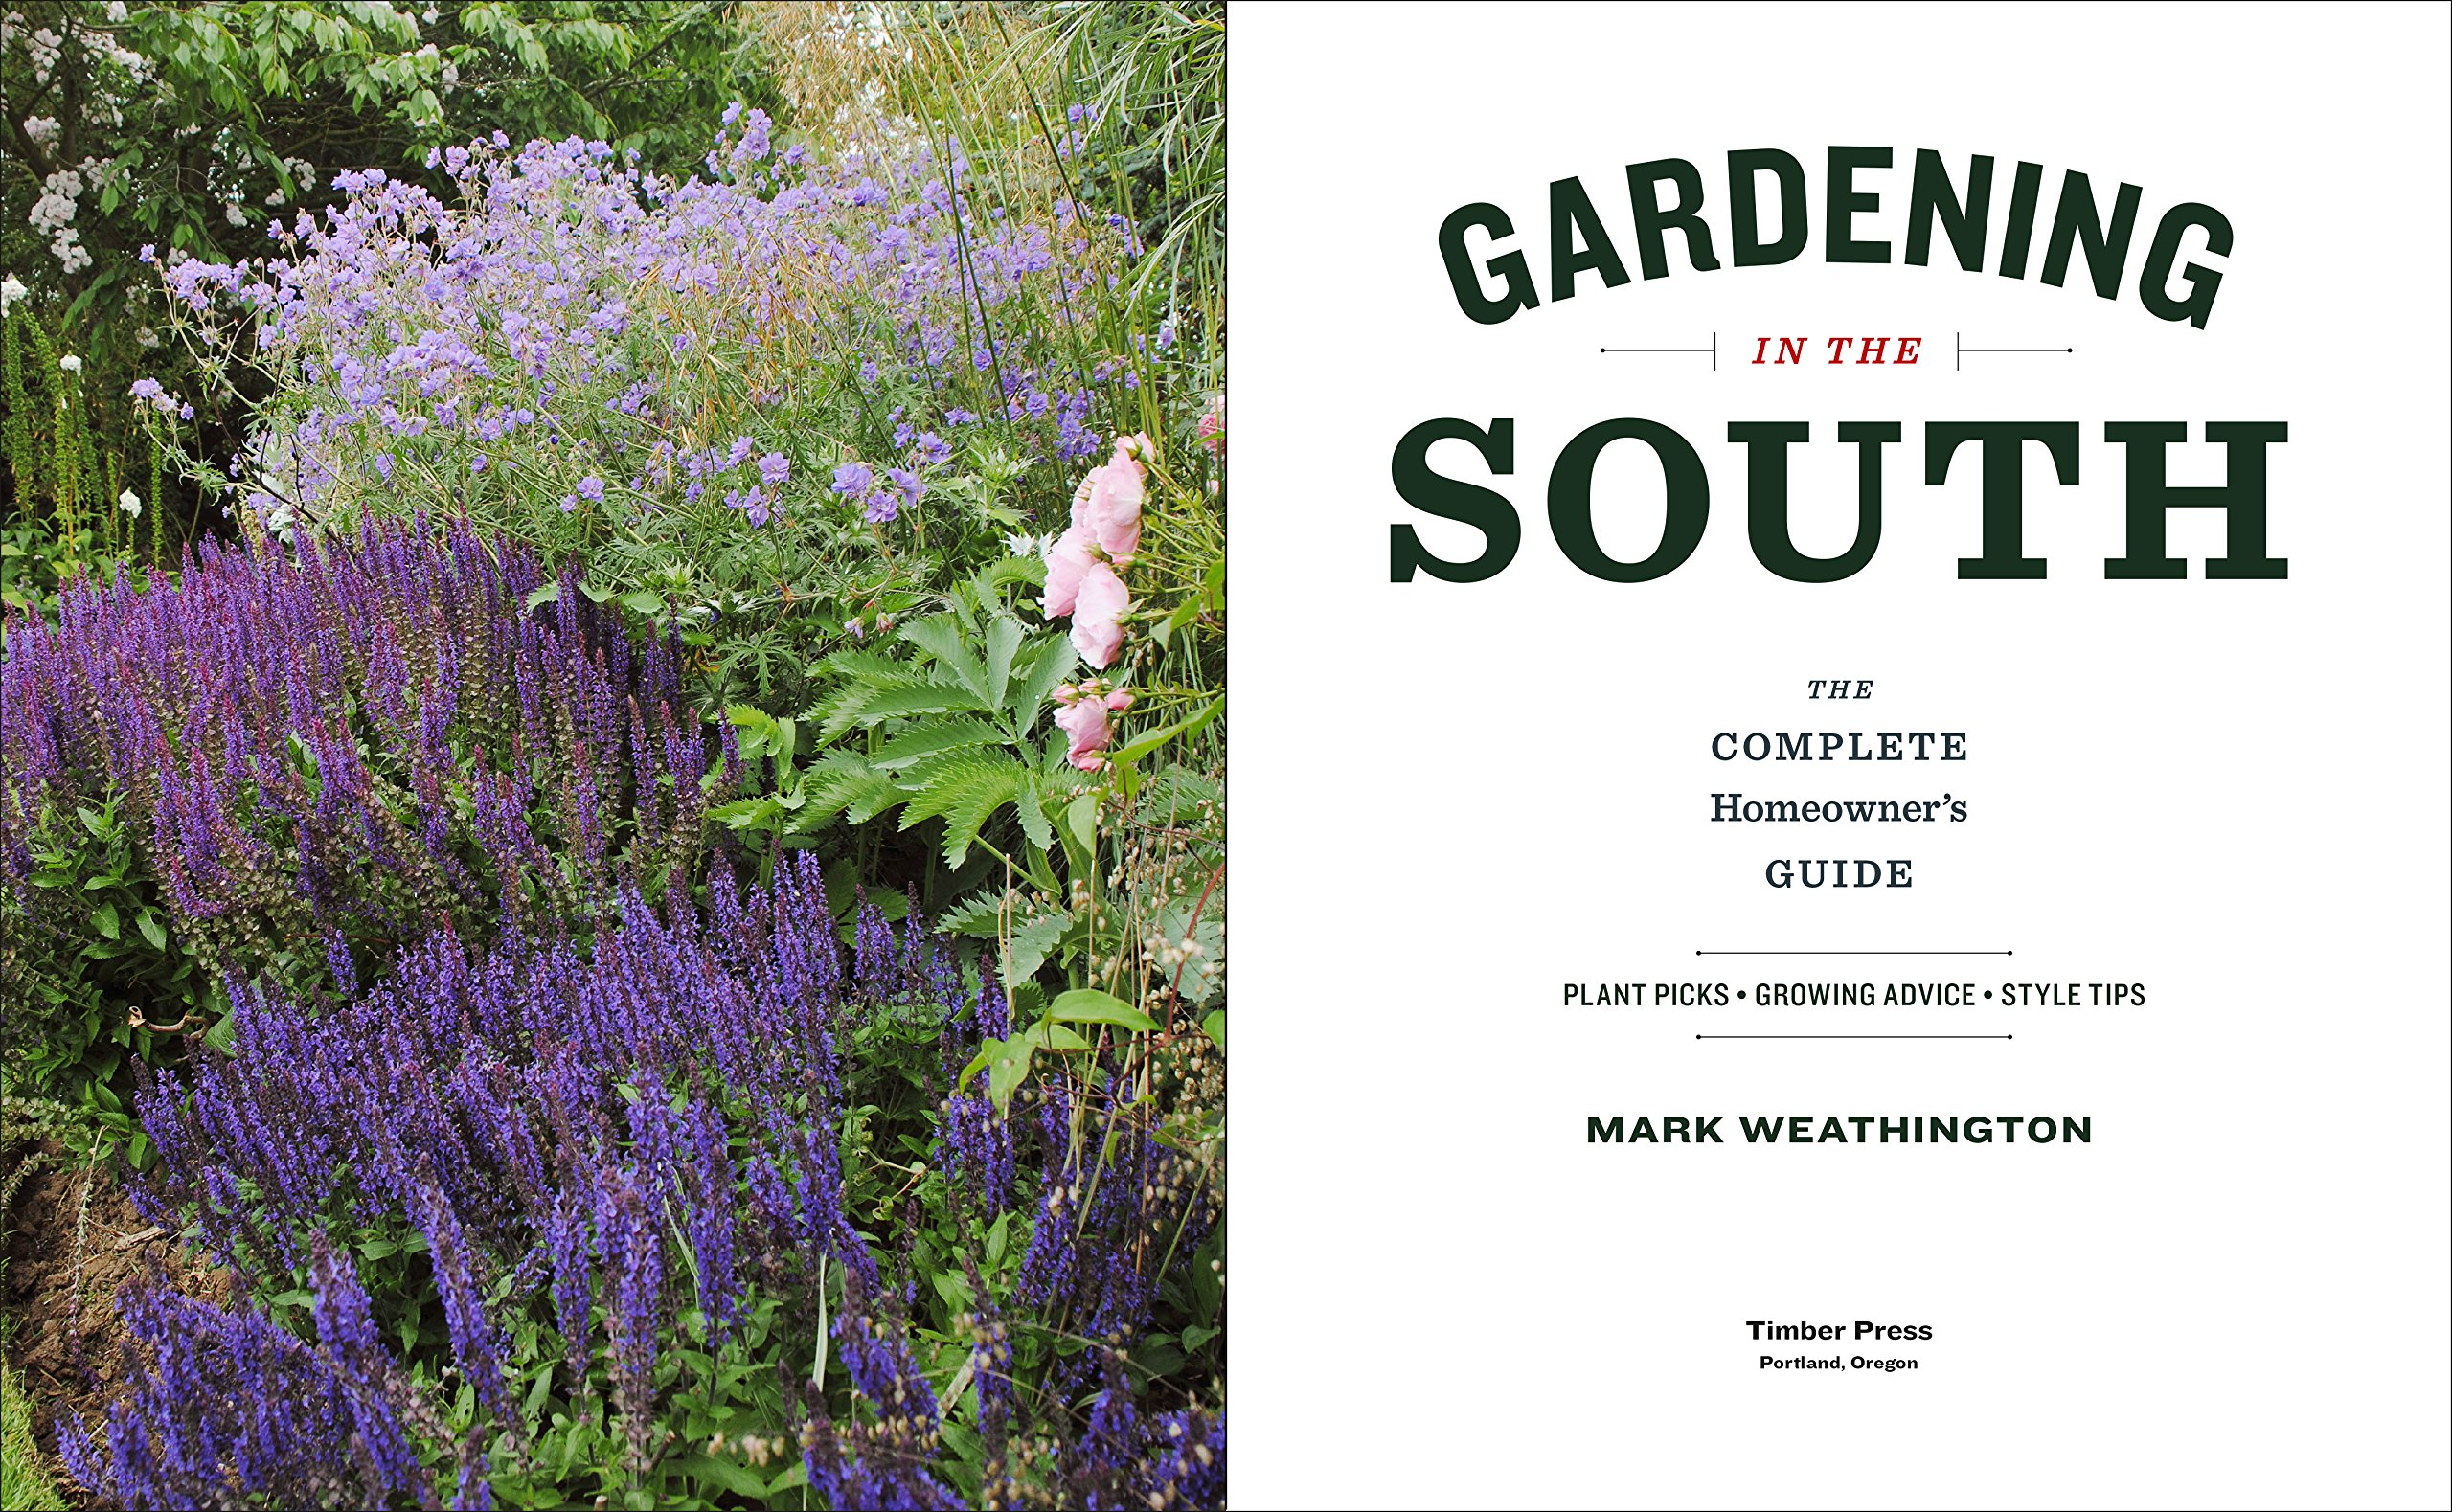 Charmant Gardening In The South: The Complete Homeowneru0027s Guide: Mark Weathington:  9781604695915: Amazon.com: Books